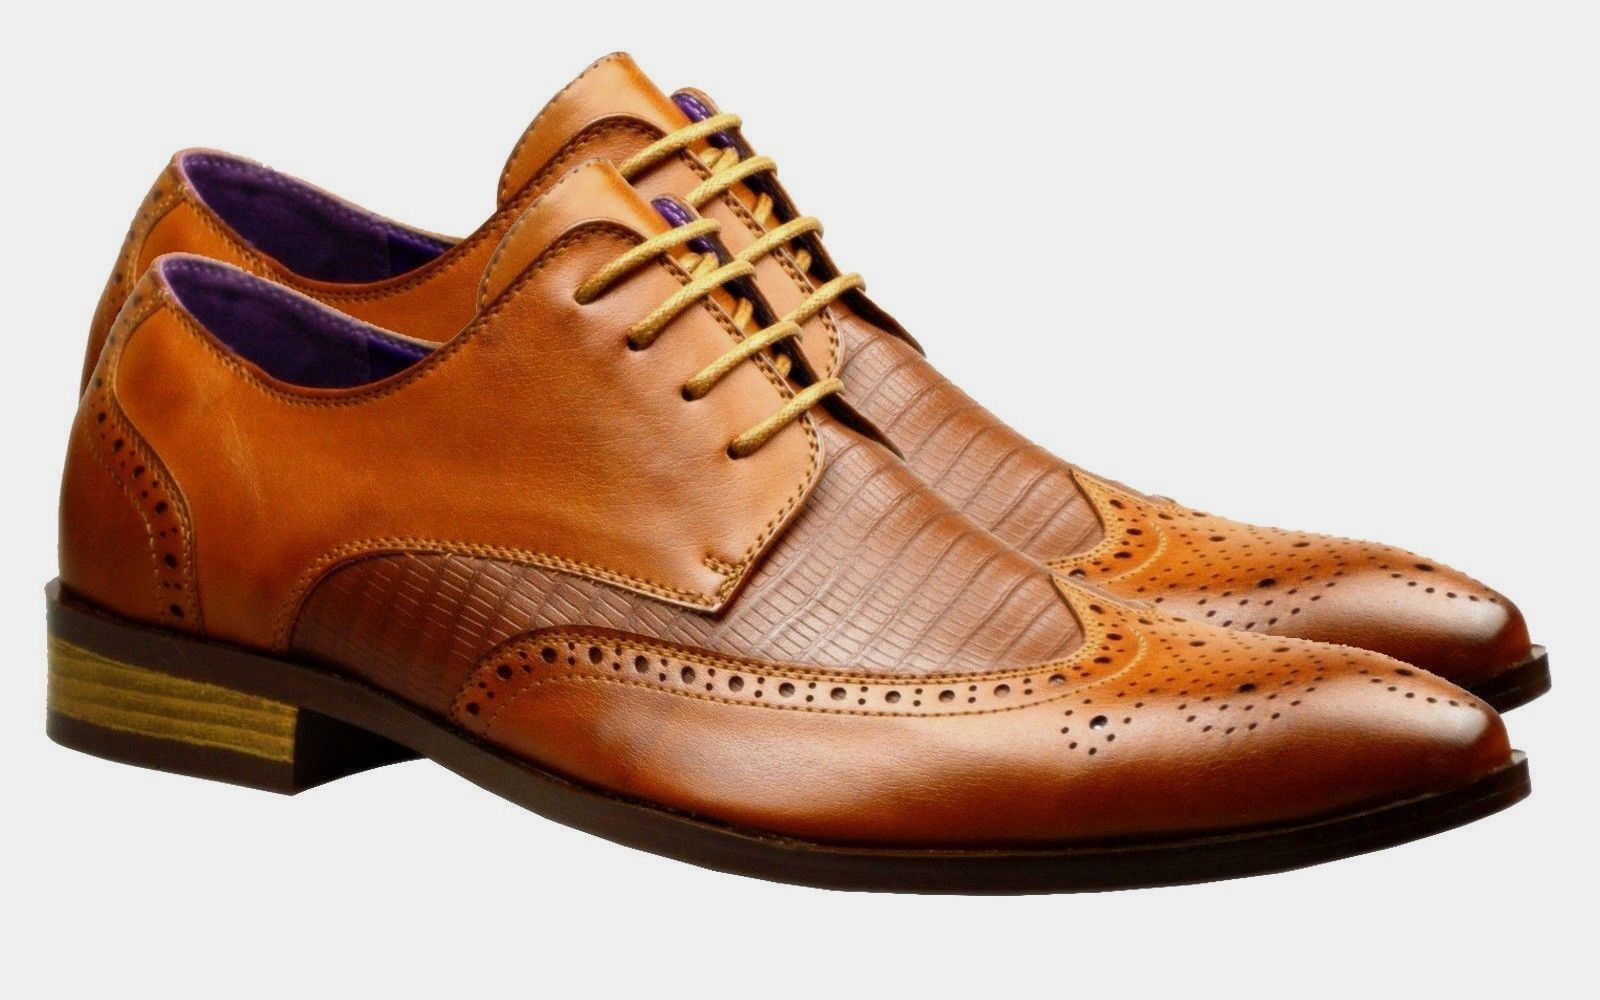 New  Herren Leder Schuhes Brogues Fashion Braun Tan Formal Wedding Smart Dress Gr  e